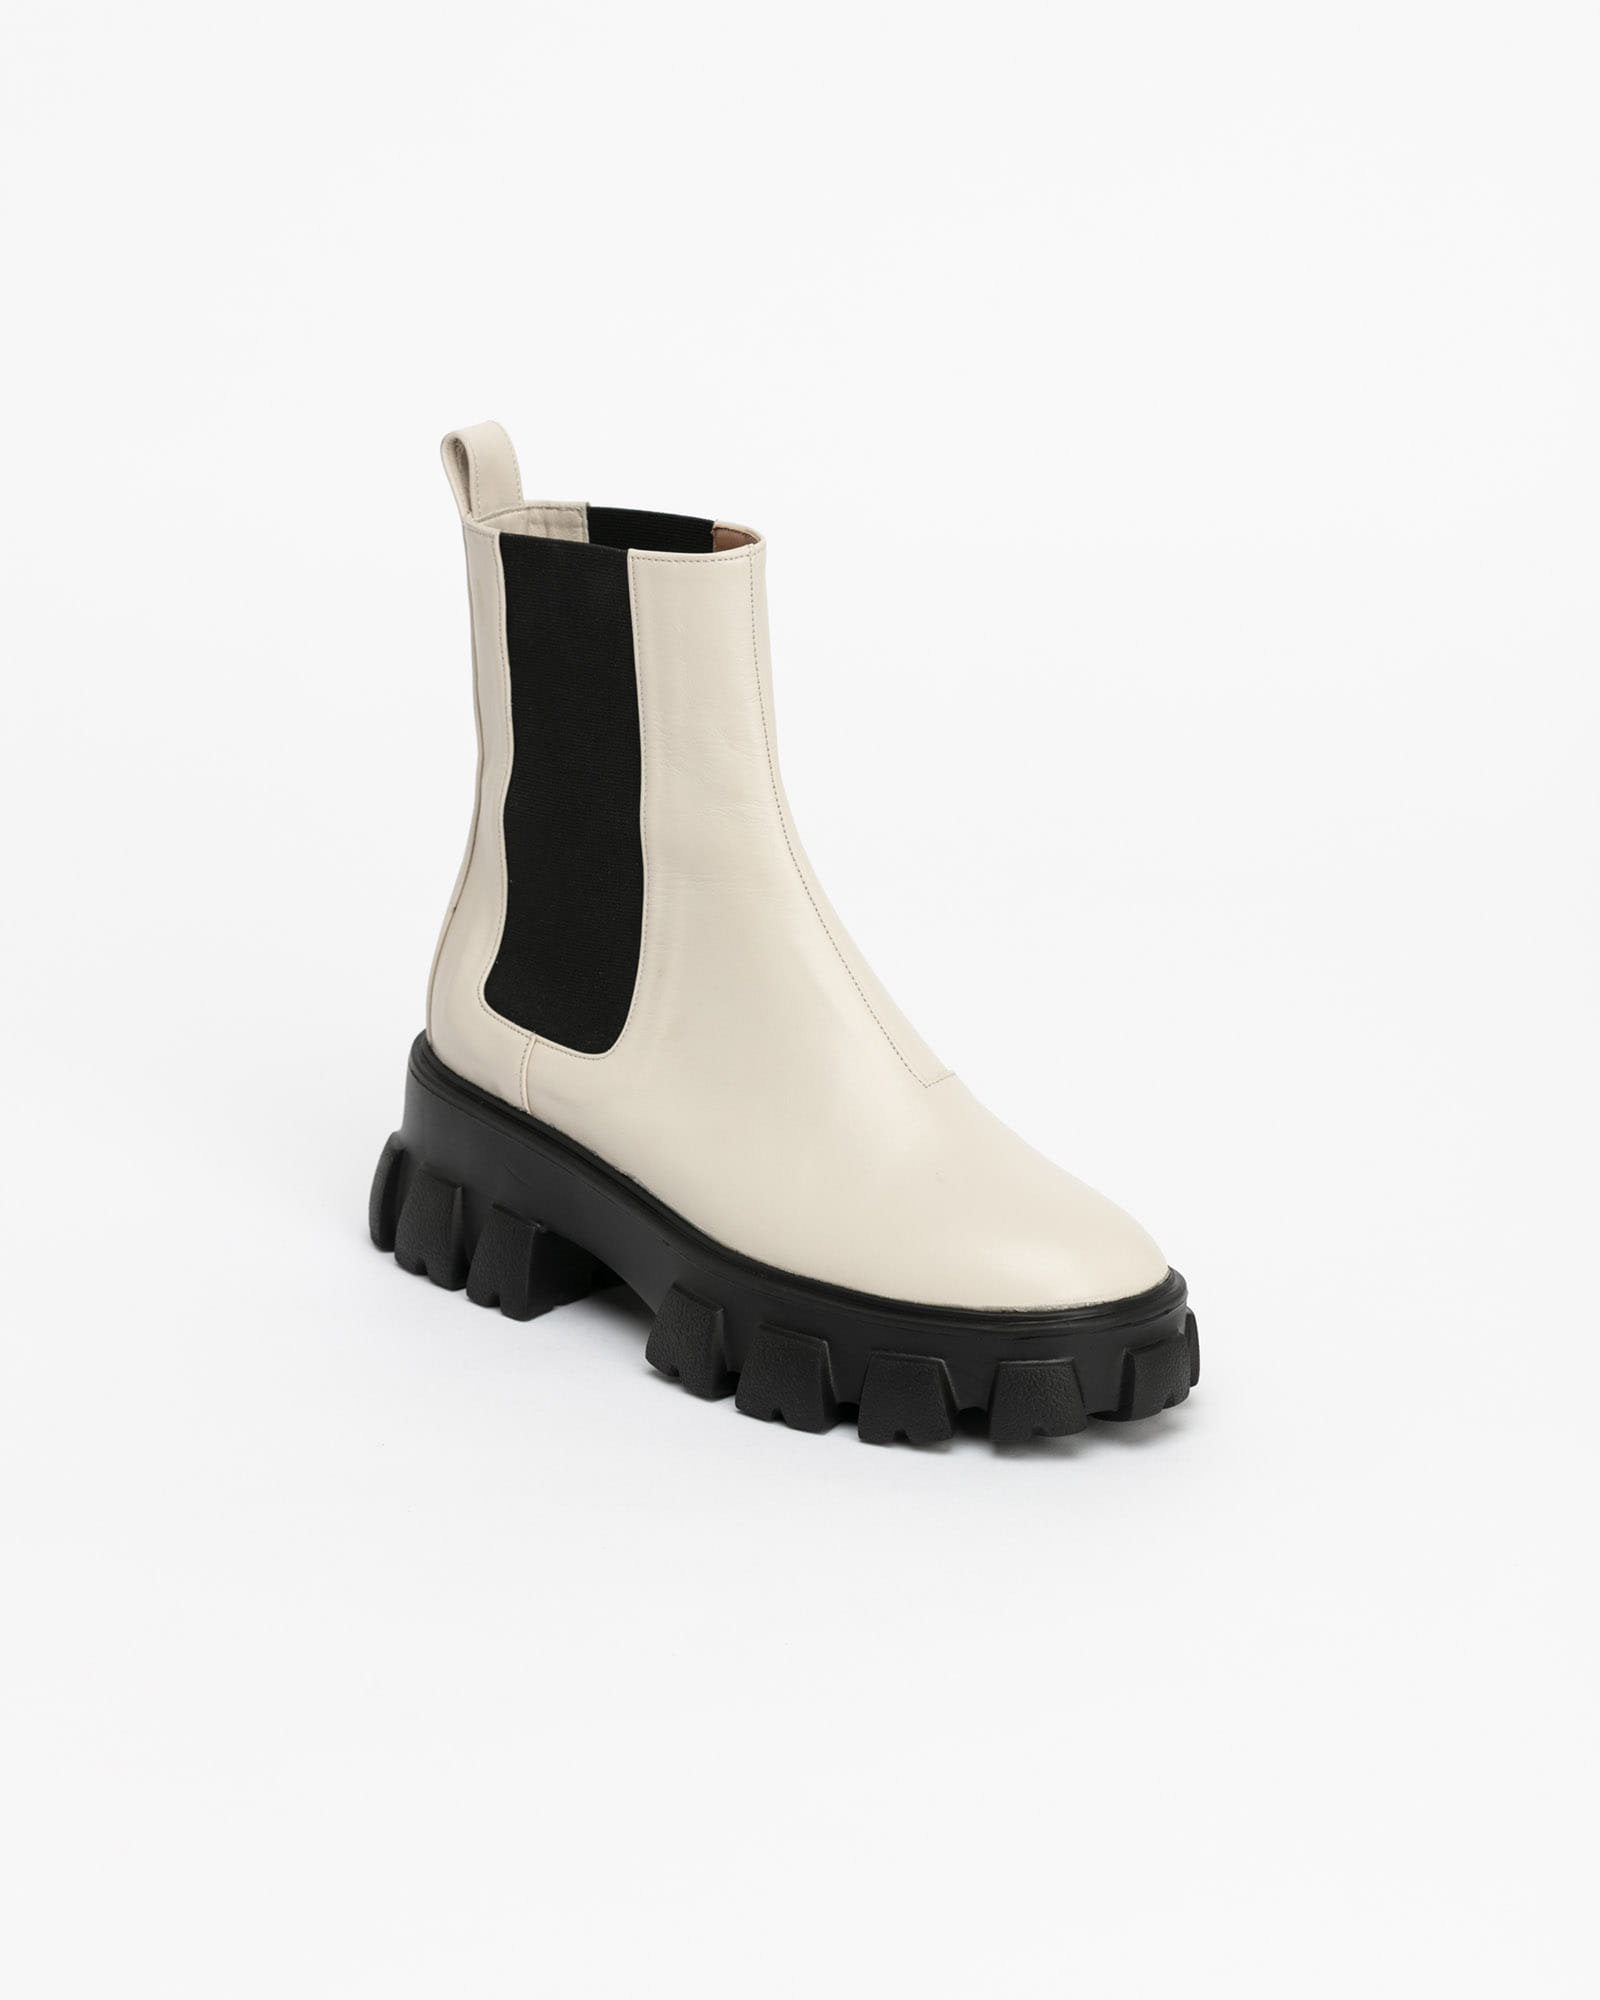 Legera Lug-sole Chelsea Boots in Ivory